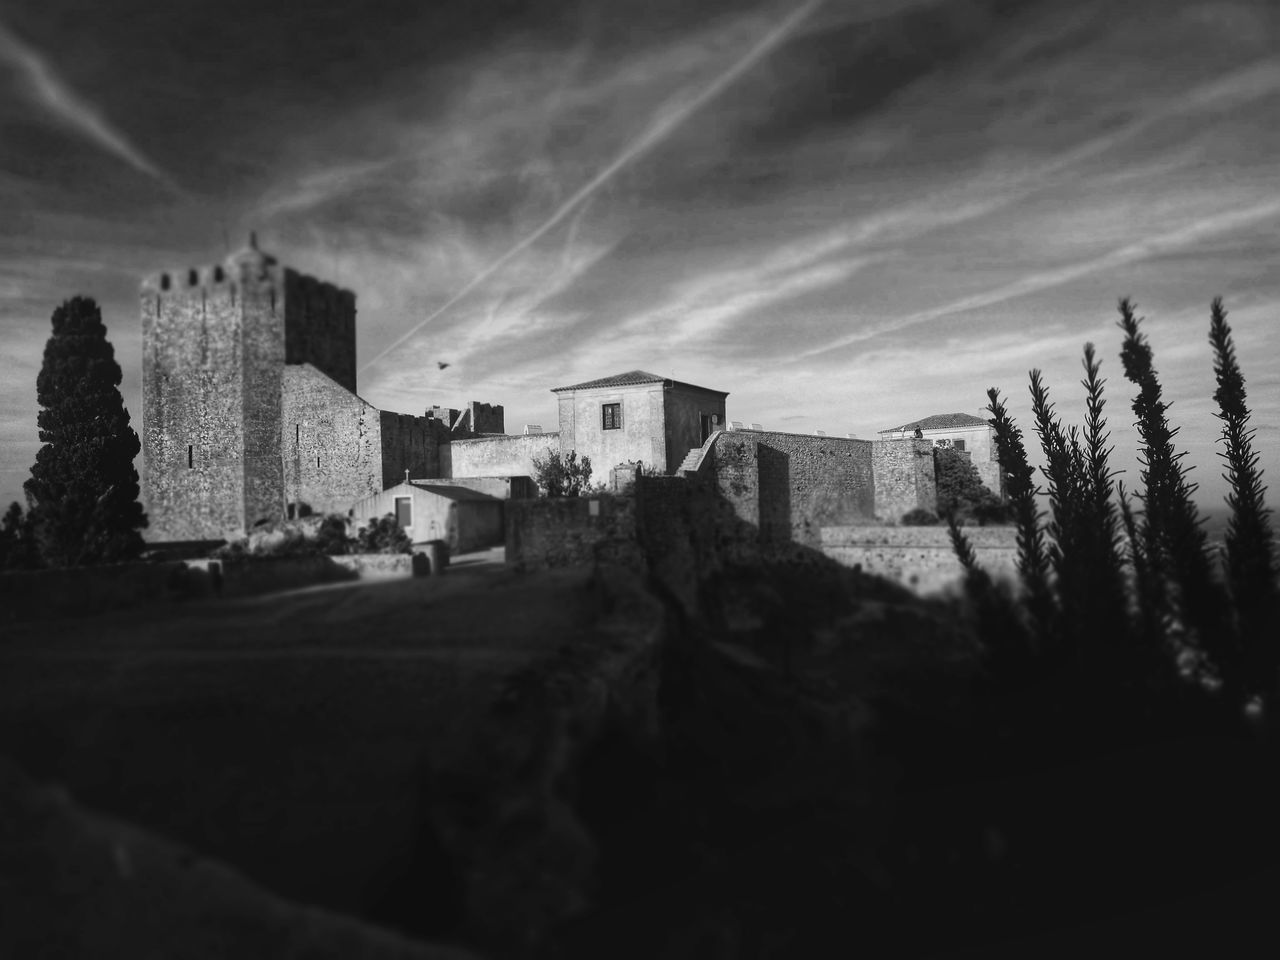 Architecture Built Structure Building Exterior Castle Monochrome Photography TakeoverContrast Tranquil Scene Architecture Tower The Past Quiet Places Sky Outdoors Cloud - Sky Day Building Story No People High Section Fort Cloud Clouds And Sky Cloudscape Peaceful Tranquility Walking Around